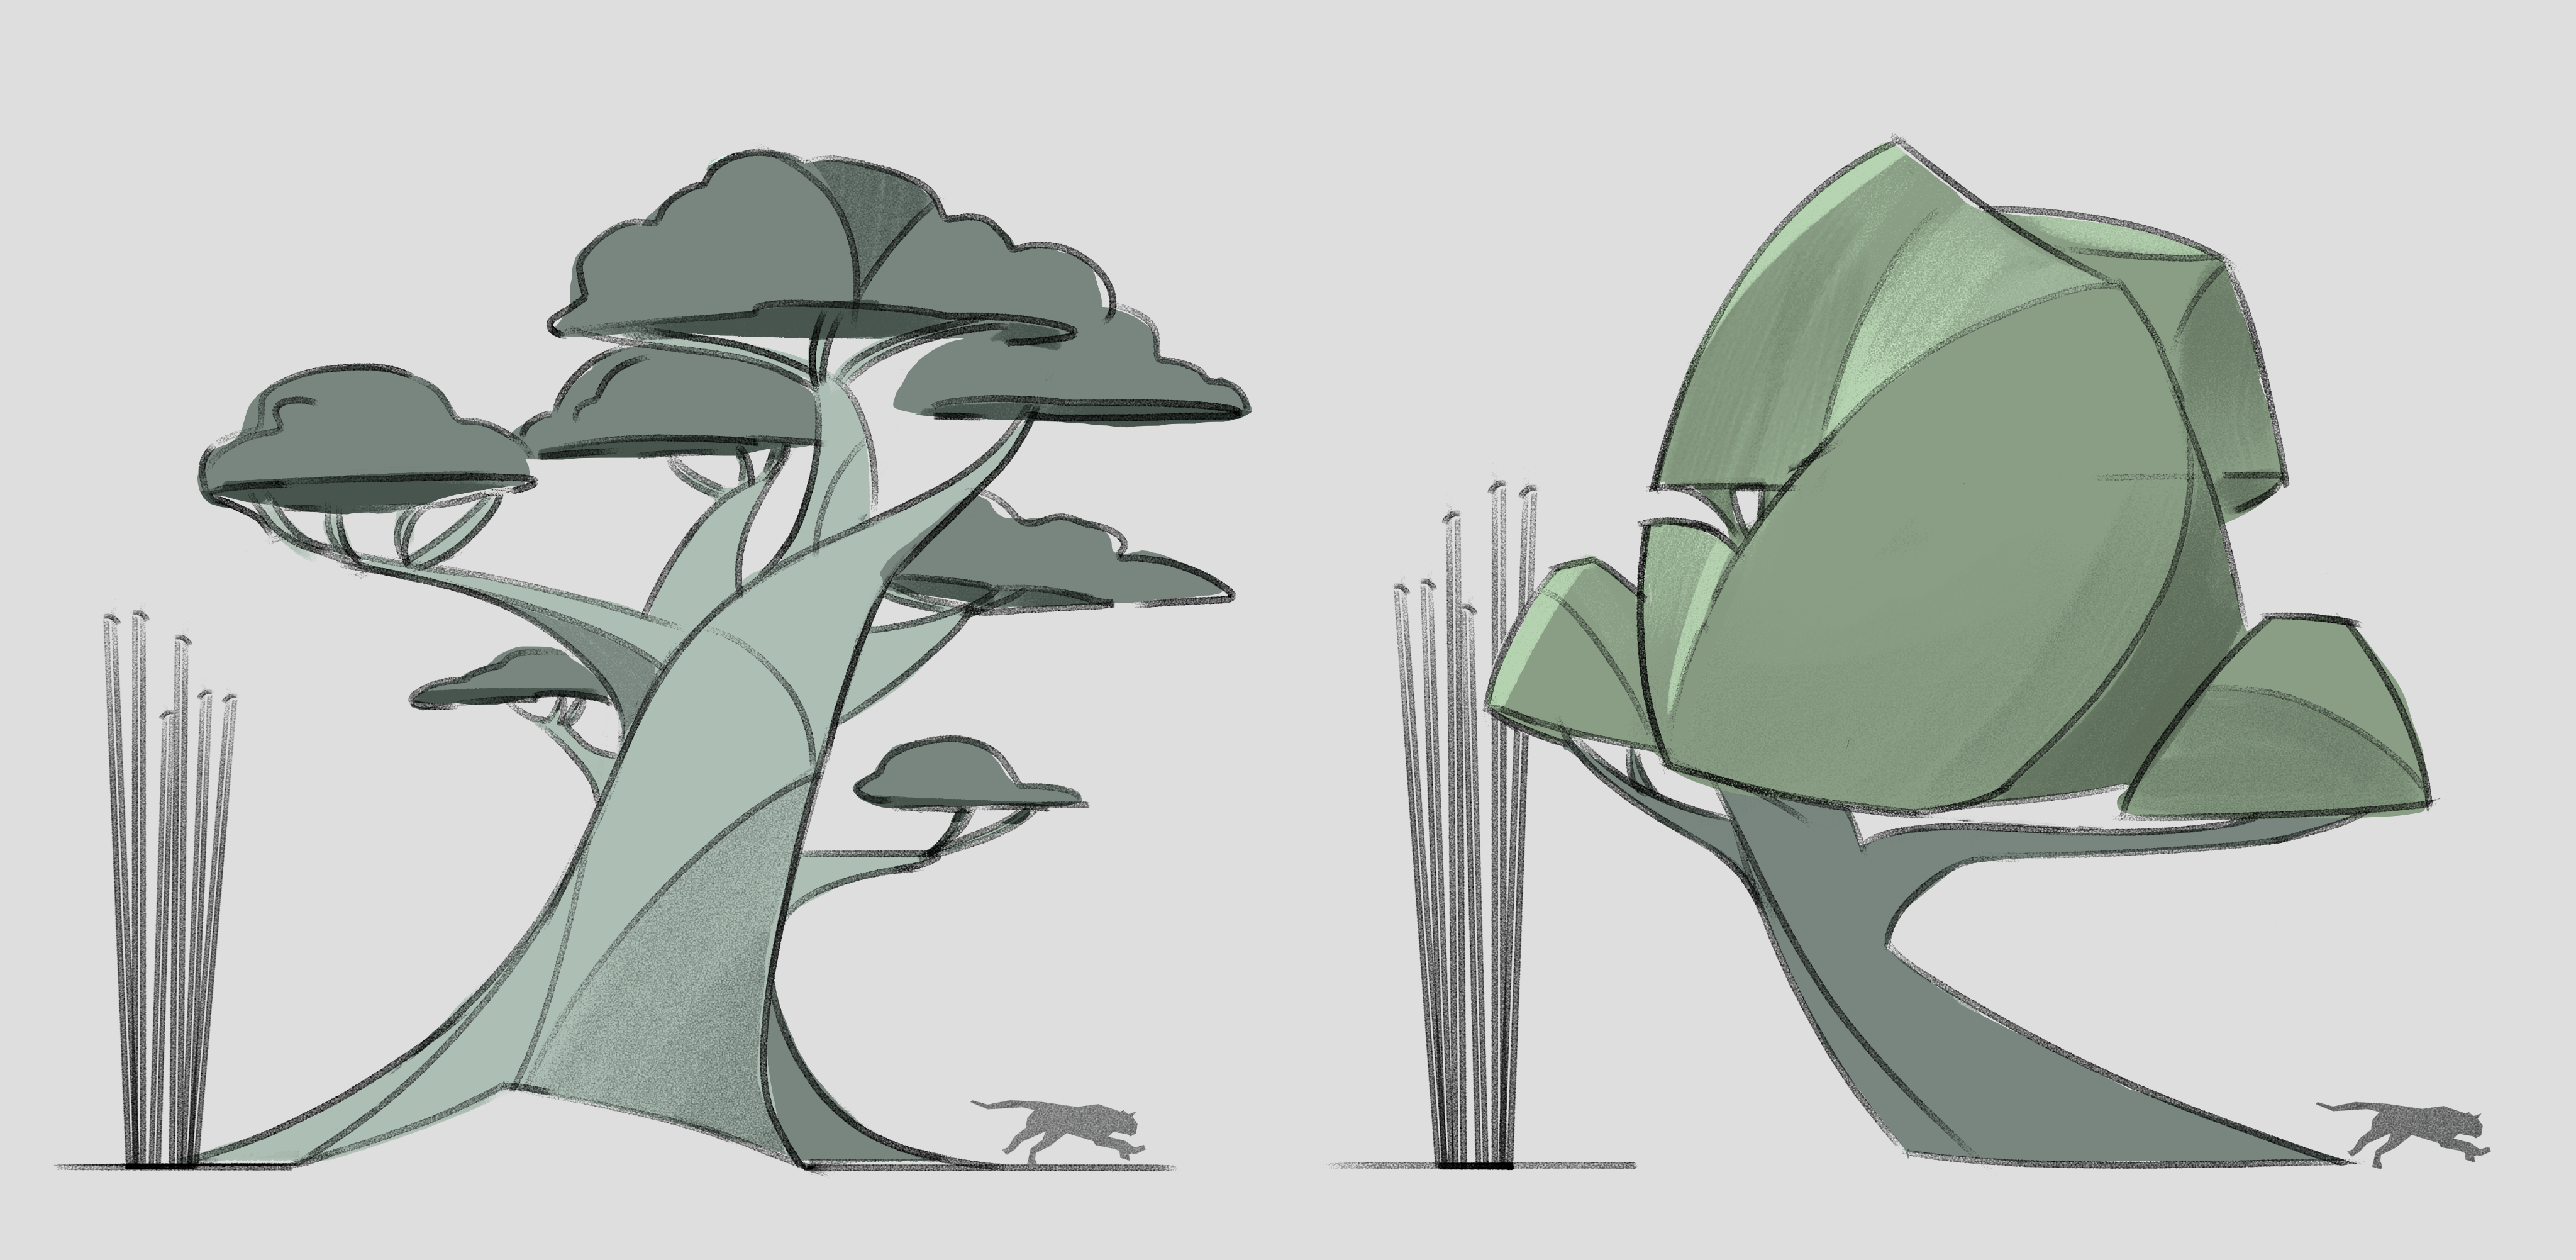 puma_forest_environment_trees